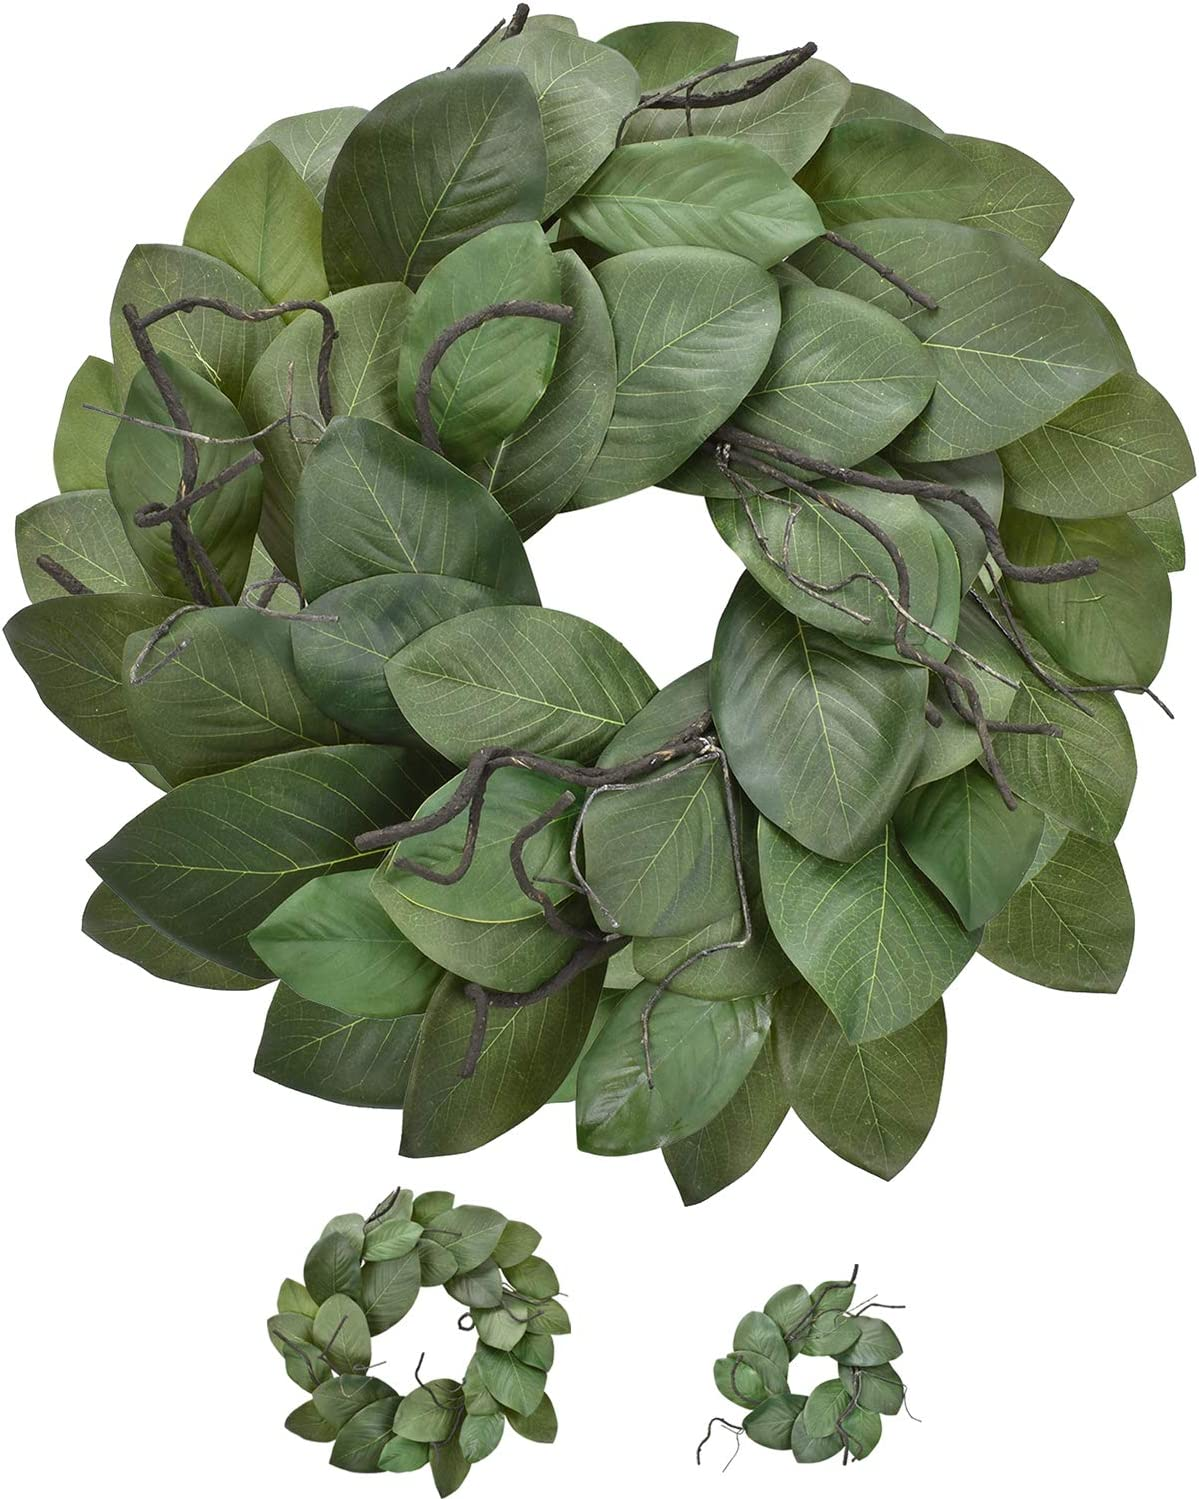 Cloris Art Wreath for Christmas, Magnolia Leaves Front Door Wreaths Artificial 22 + 16.6 Inch for Farmhouse Home Party Holiday Indoor Outdoor Wall Decor(Green)